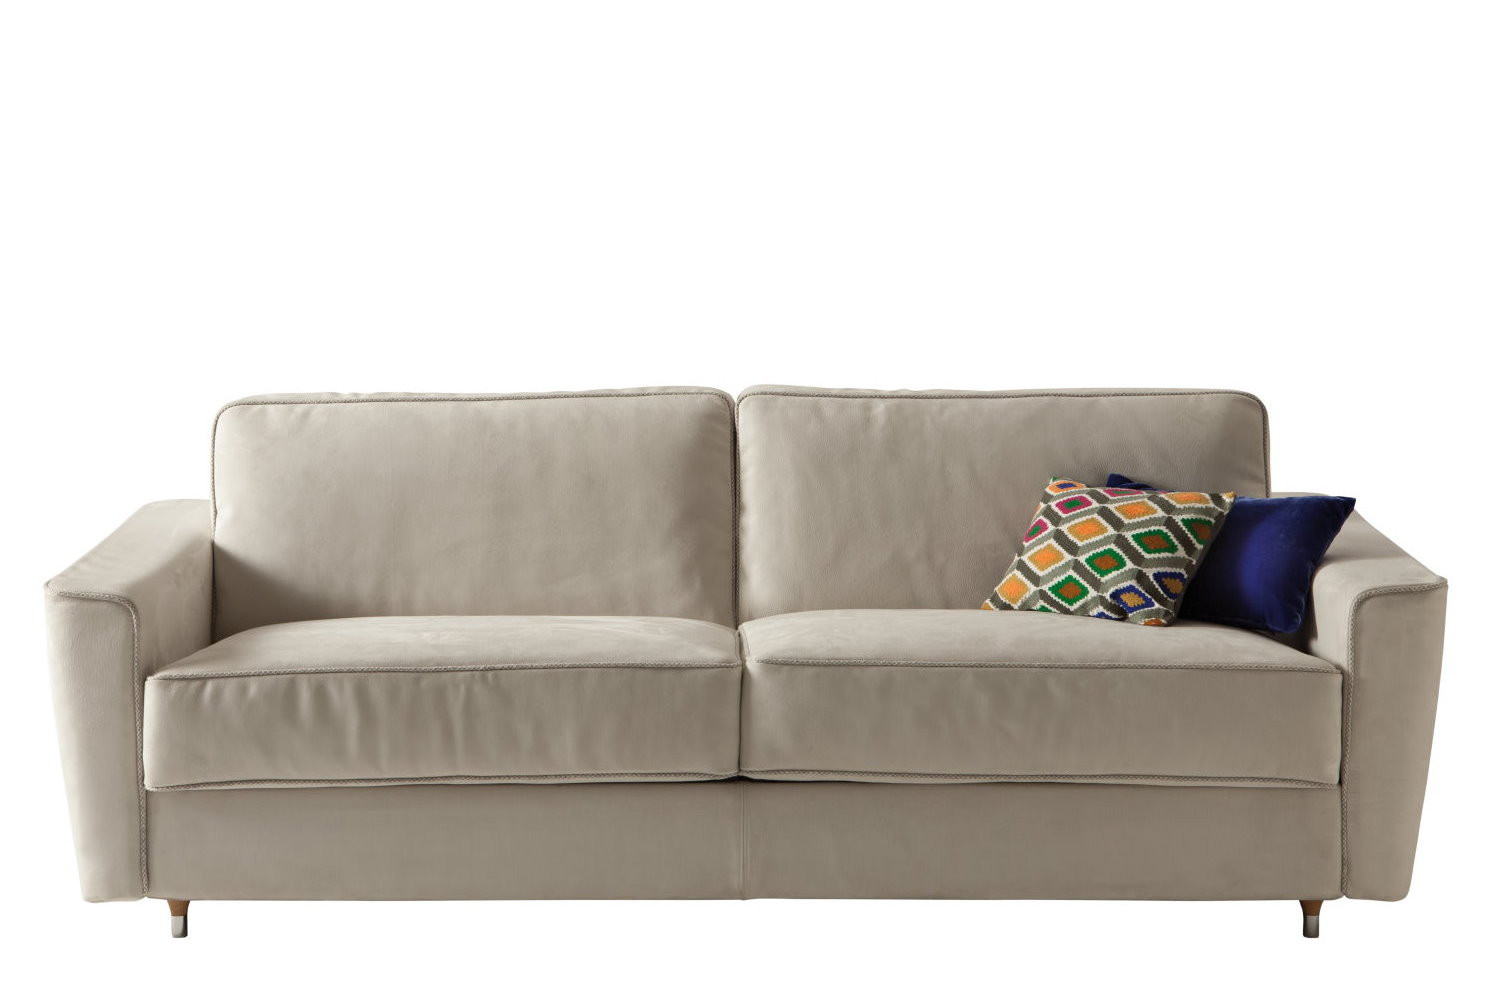 Sofa Chaise And Ottoman